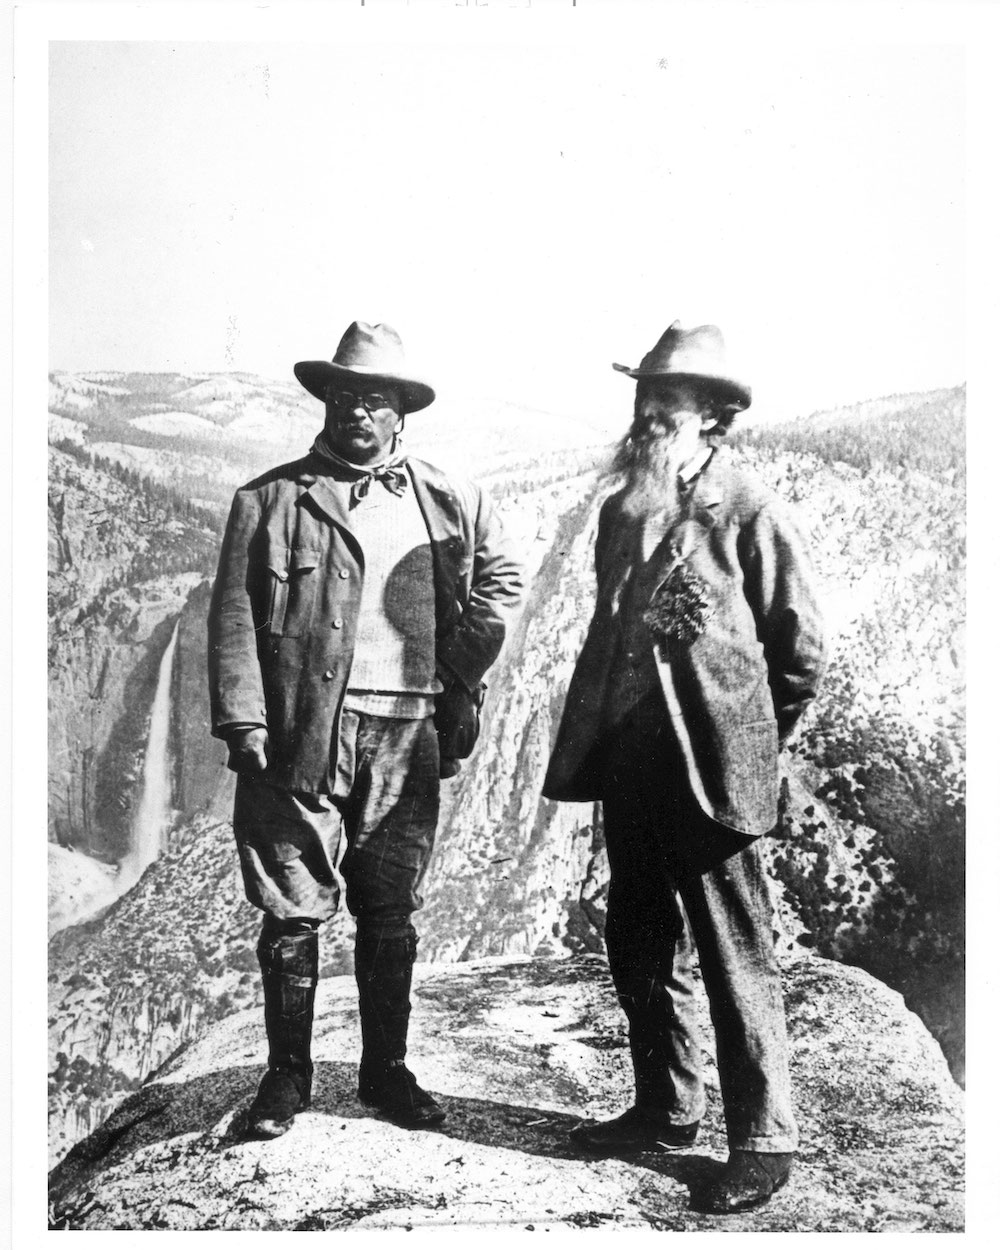 Theodore Roosevelt and John Muir stand together in Yosemite